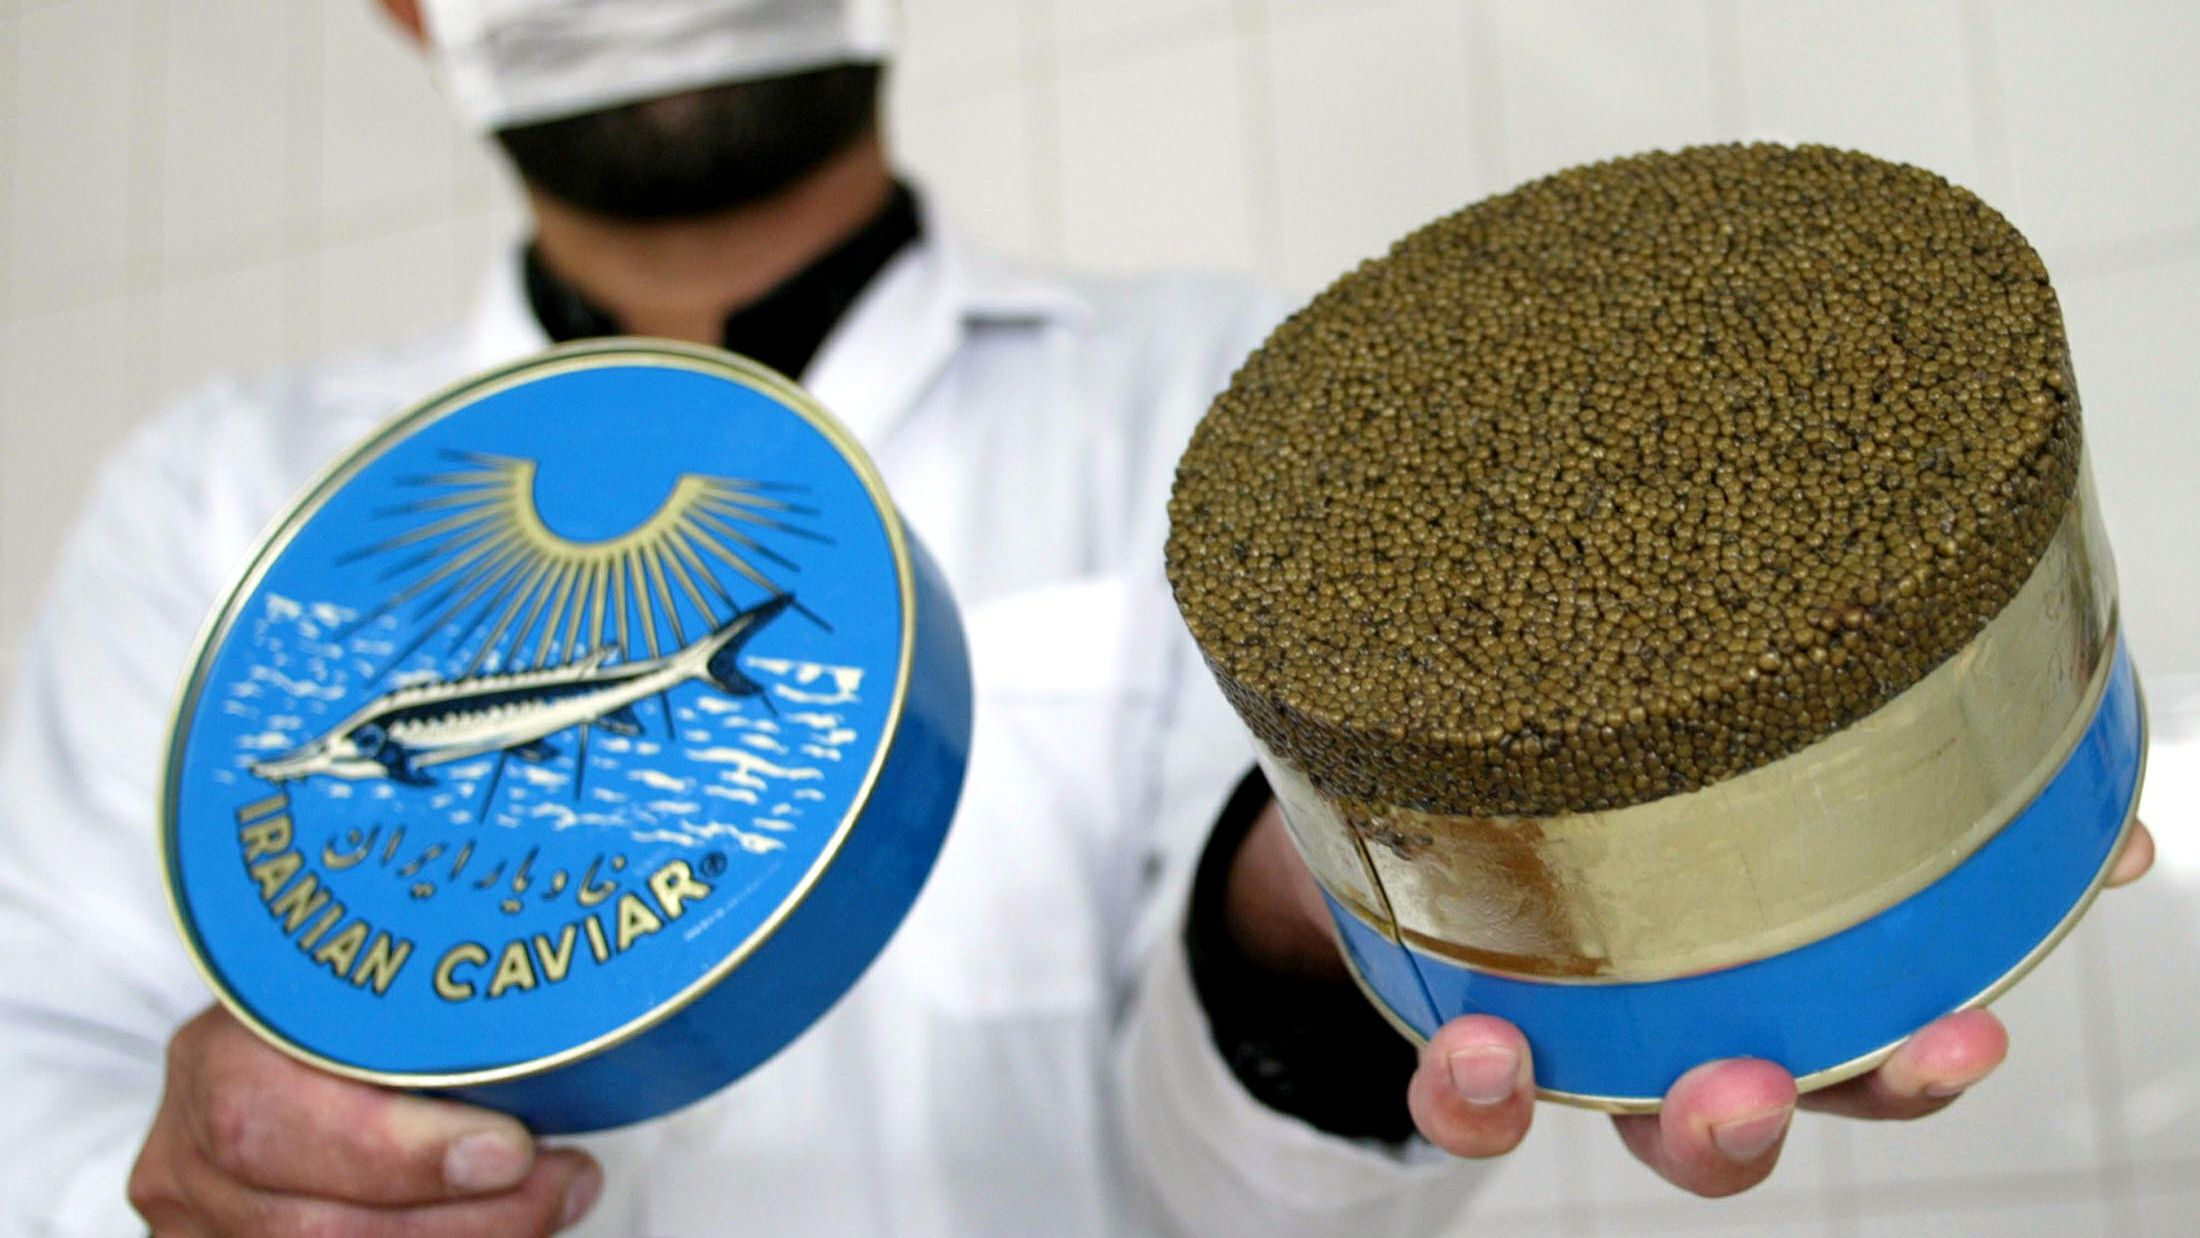 """-PHOTO TAKEN 21OCT03- An Iranian caviar packer shows a 2 kilogram can of Beluga caviar at the Bandar-e Anzali caviar packing facility in northern Iran October 21, 2003. [Fishermen on the windswept beach at Bandar-e Anzali fear illegal fishing and oil pollution mean they could be the last generation to scour the Caspian for its """"black gold"""".]"""